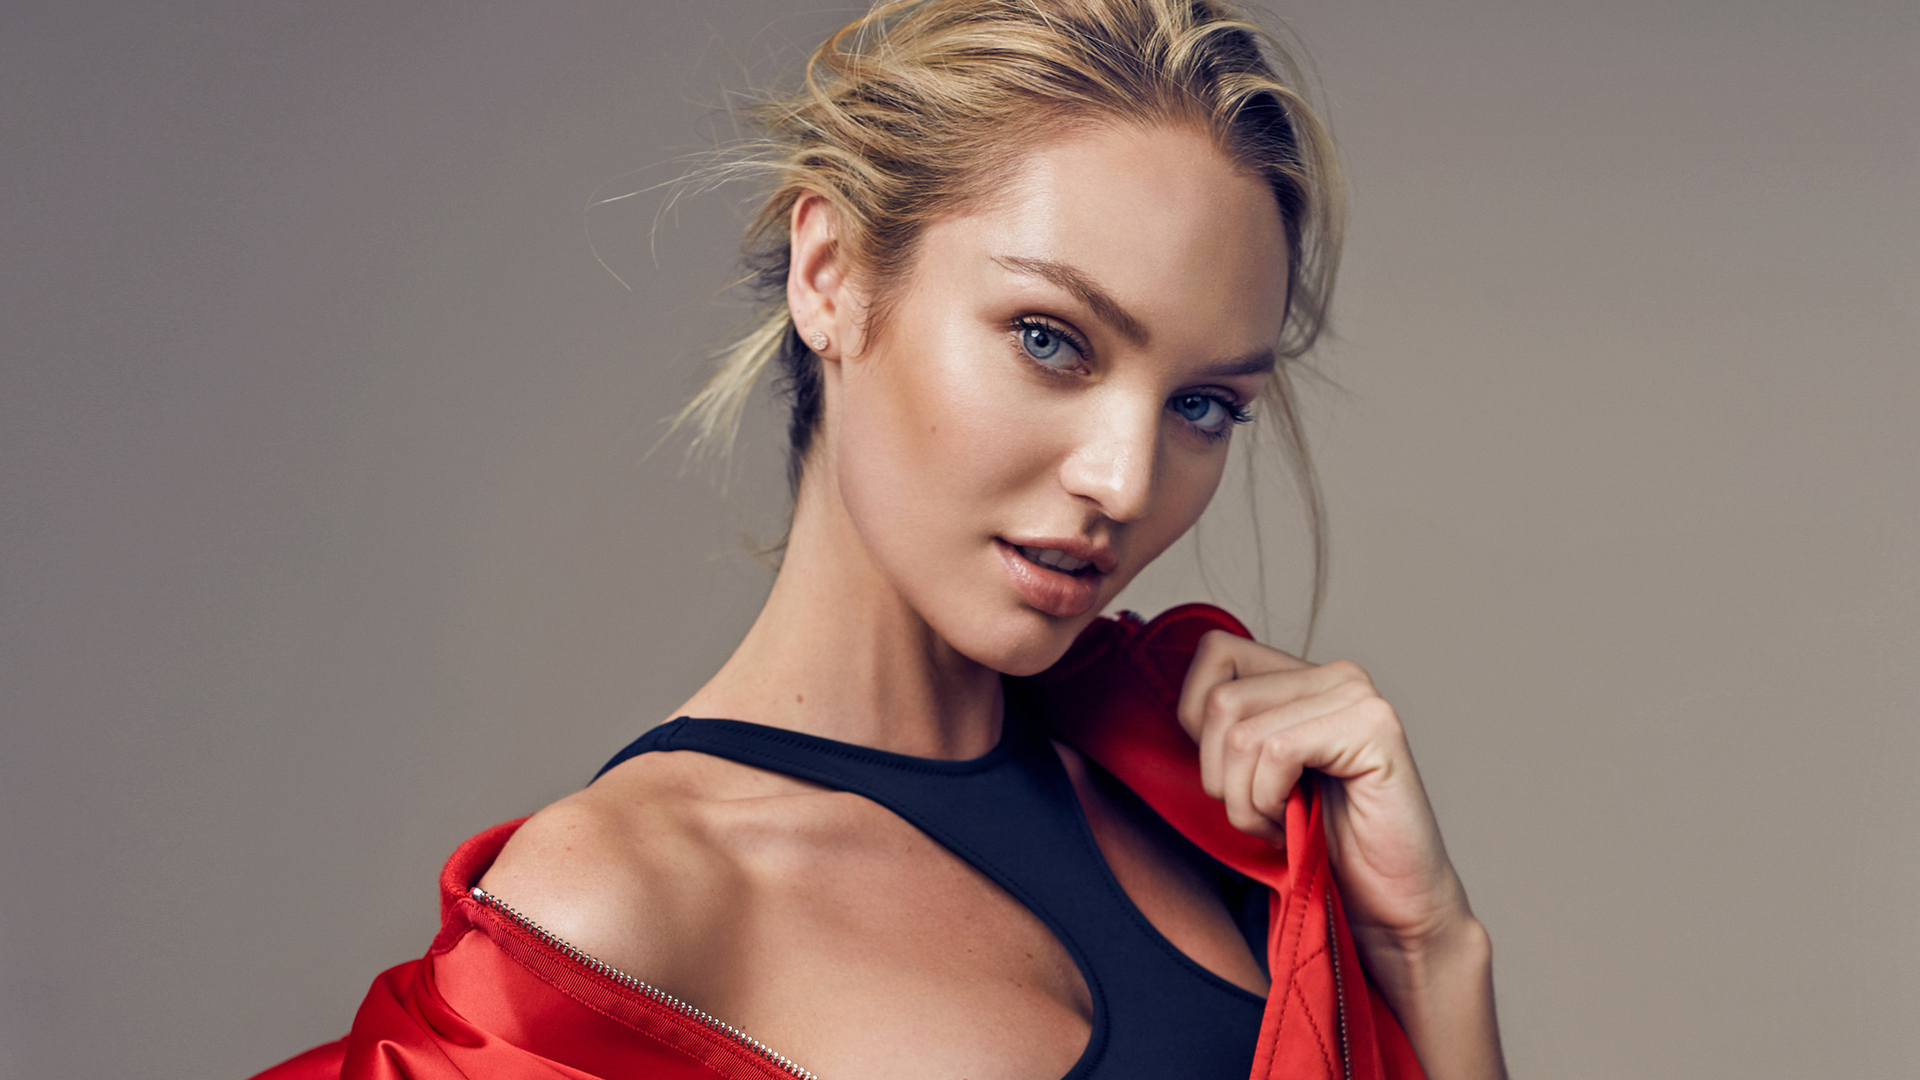 22+ Candice Swanepoel HD wallpapers High Quality